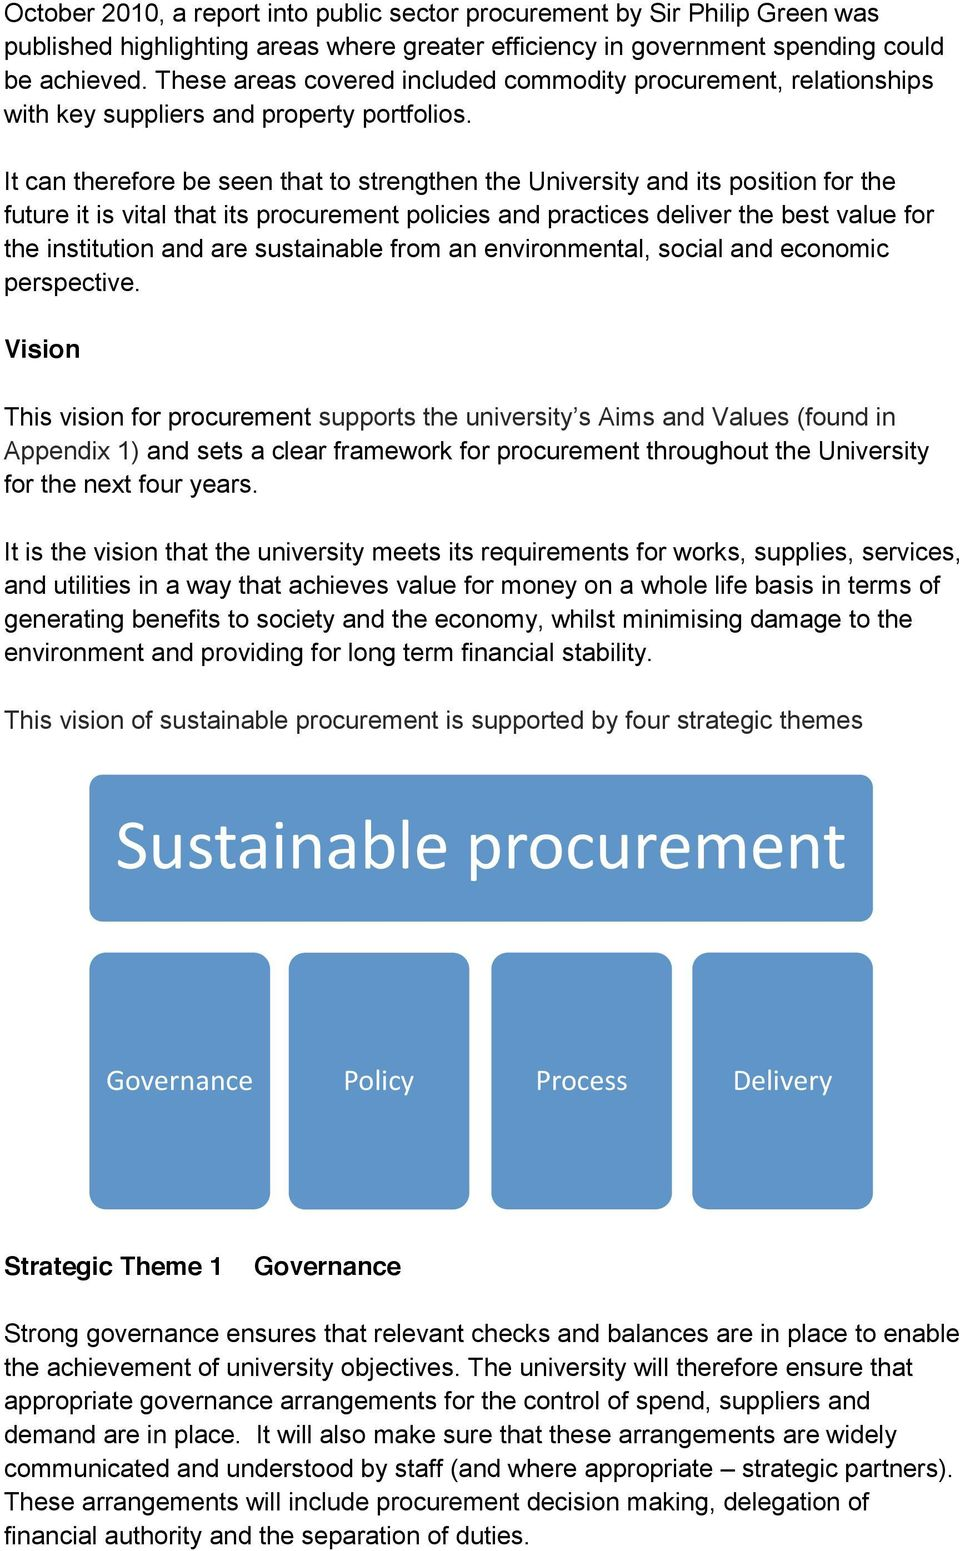 It can therefore be seen that to strengthen the University and its position for the future it is vital that its procurement policies and practices deliver the best value for the institution and are